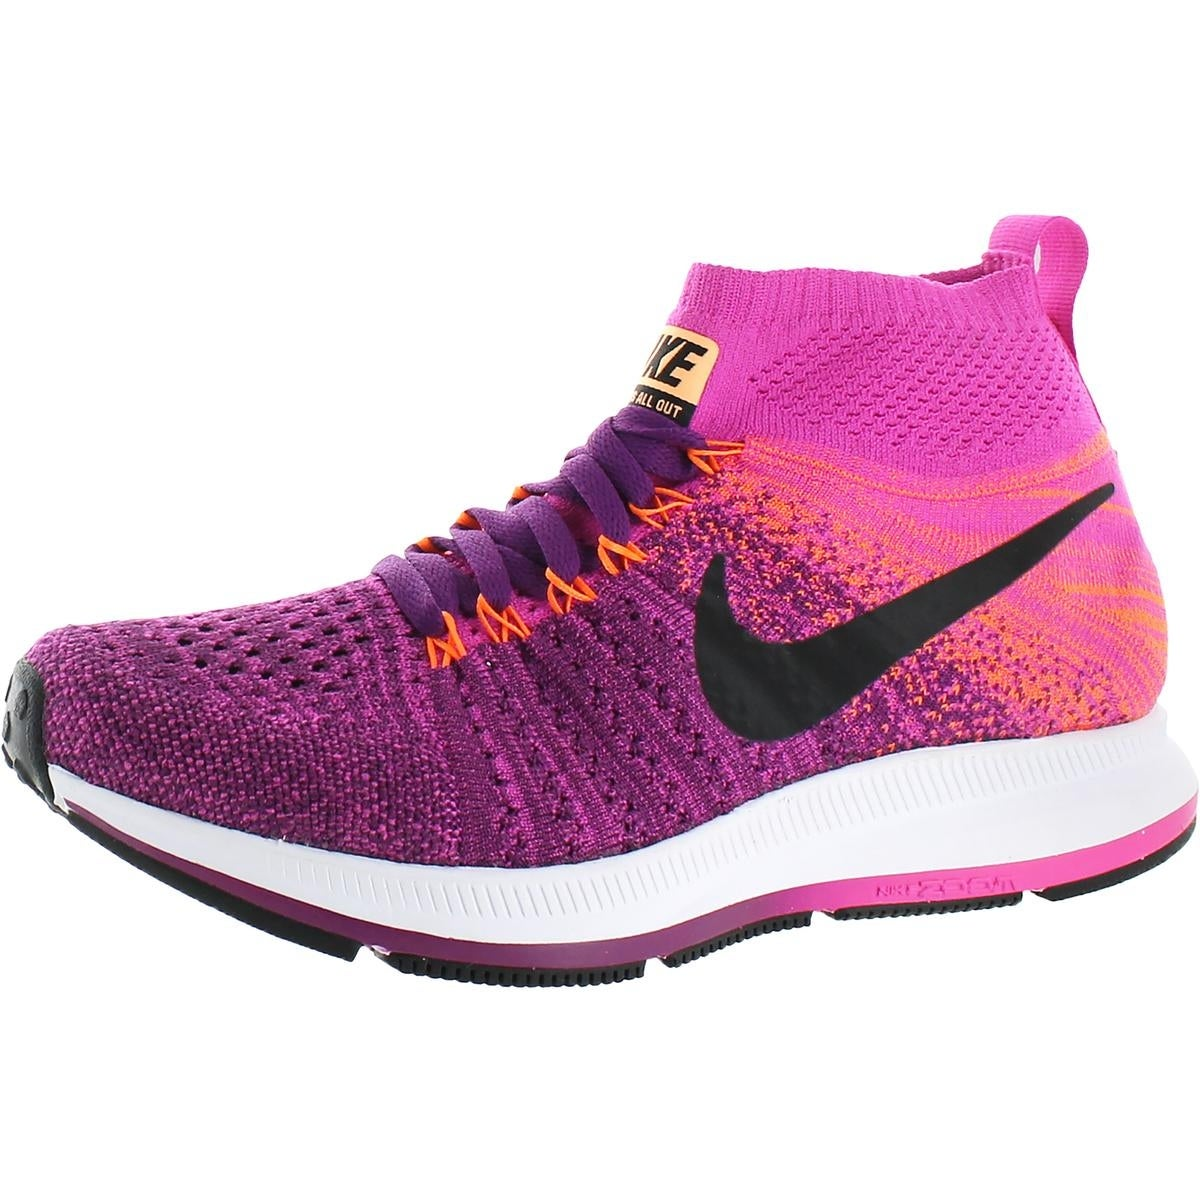 4de2ca4702c7 Shop Nike Girls ZM Pegasus All Out Flyknit Running Shoes Big Kid Lightweight  - Free Shipping Today - Overstock - 21942265